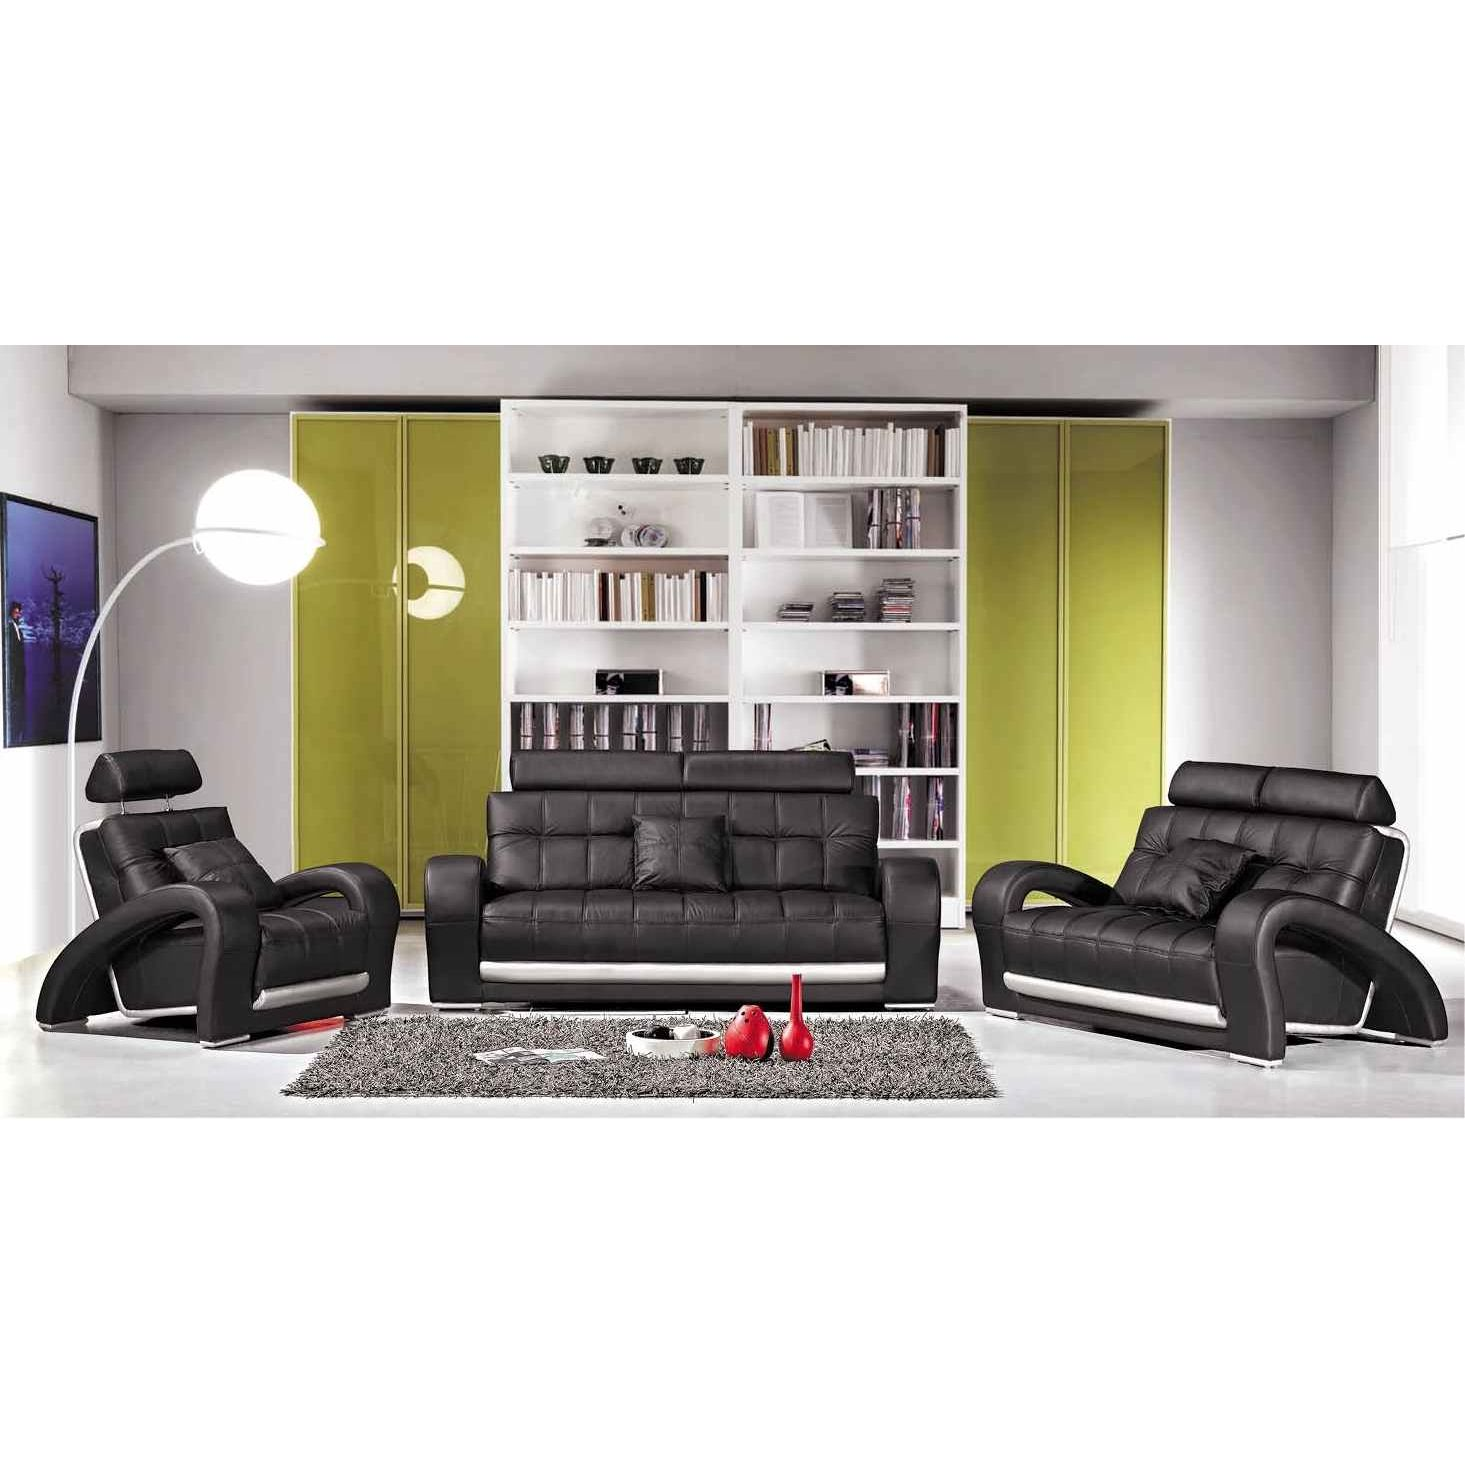 deco in paris ensemble salon cuir noir 3 2 1 places verdi verdi 3 2 1 noir gris. Black Bedroom Furniture Sets. Home Design Ideas